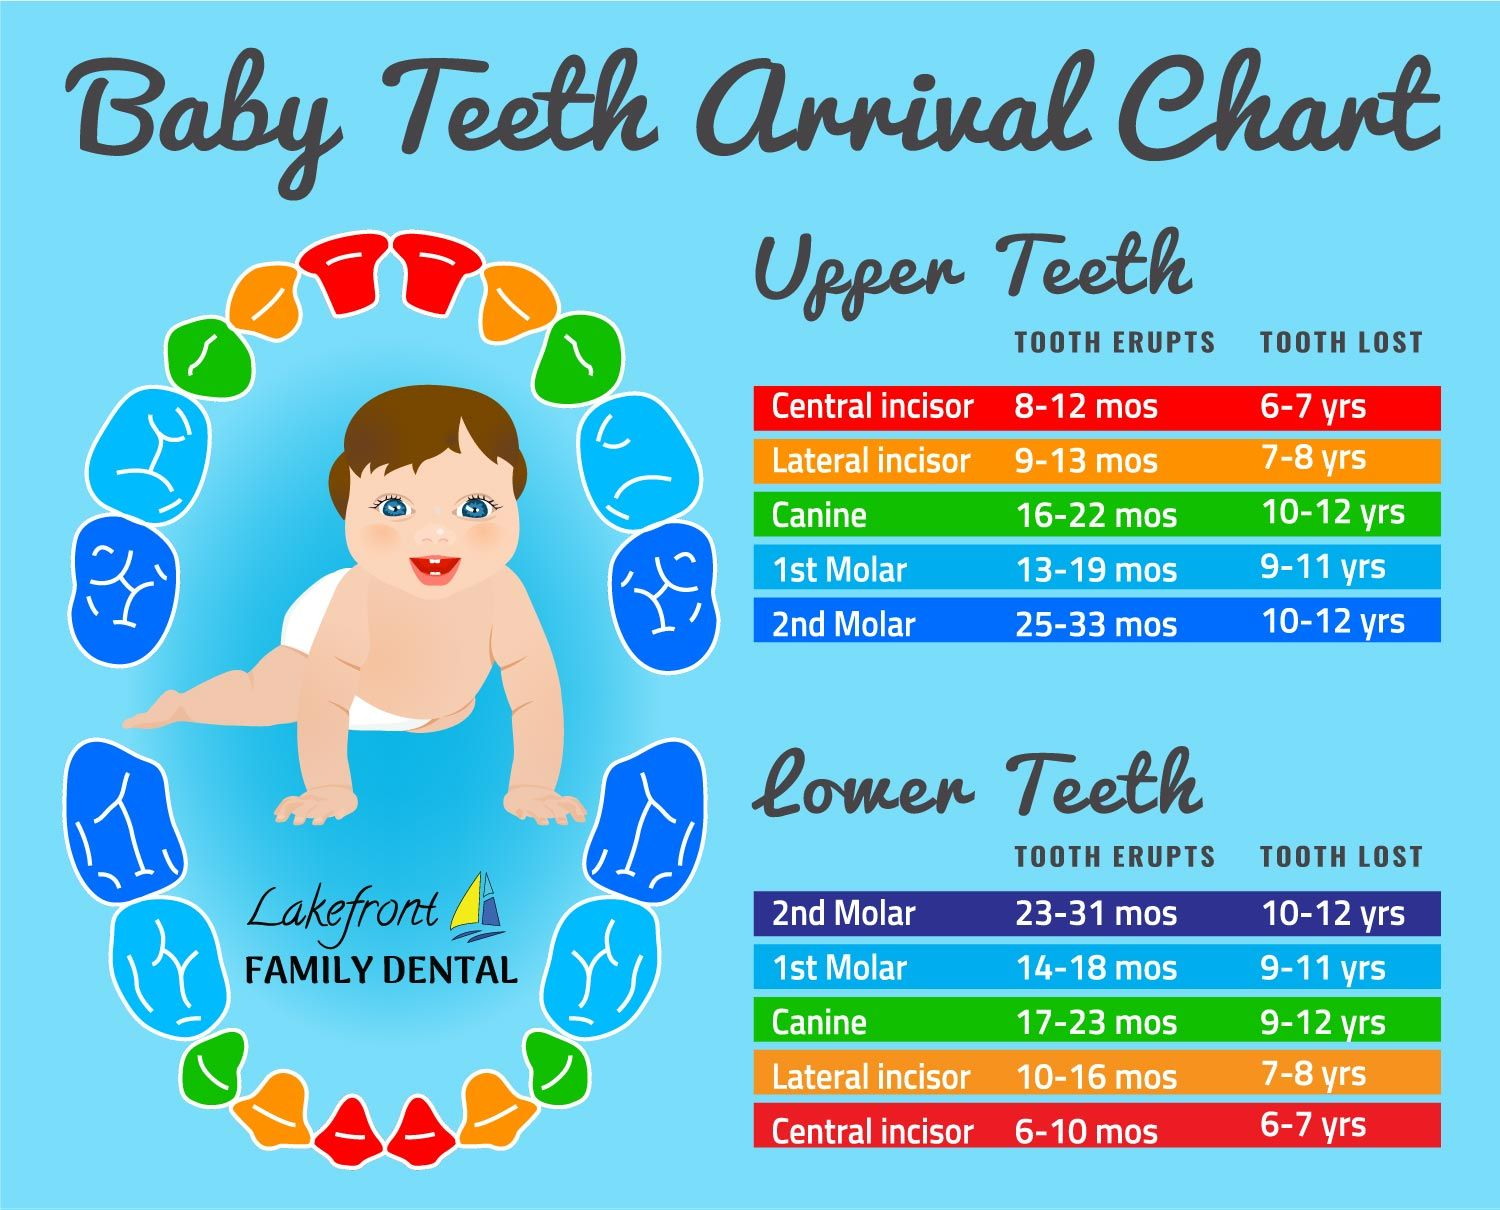 Baby teeth arrival chart when do baby teeth erupt and at